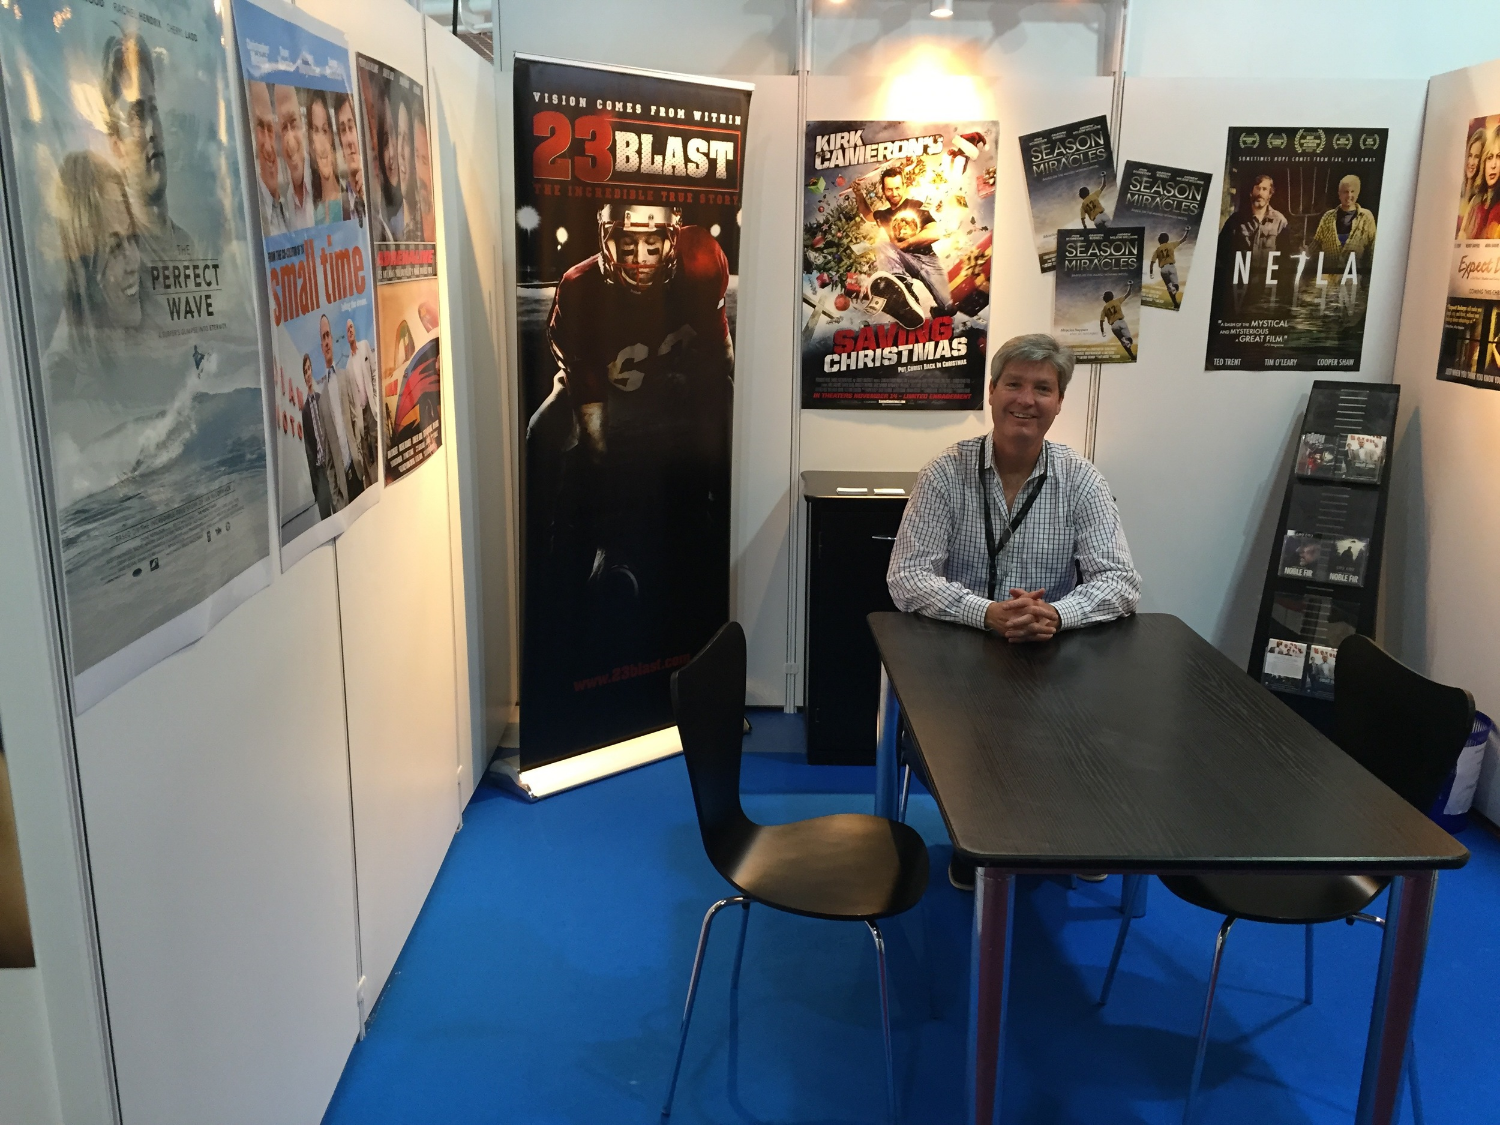 23 BLAST getting prominent placement at Cannes Film Festival.